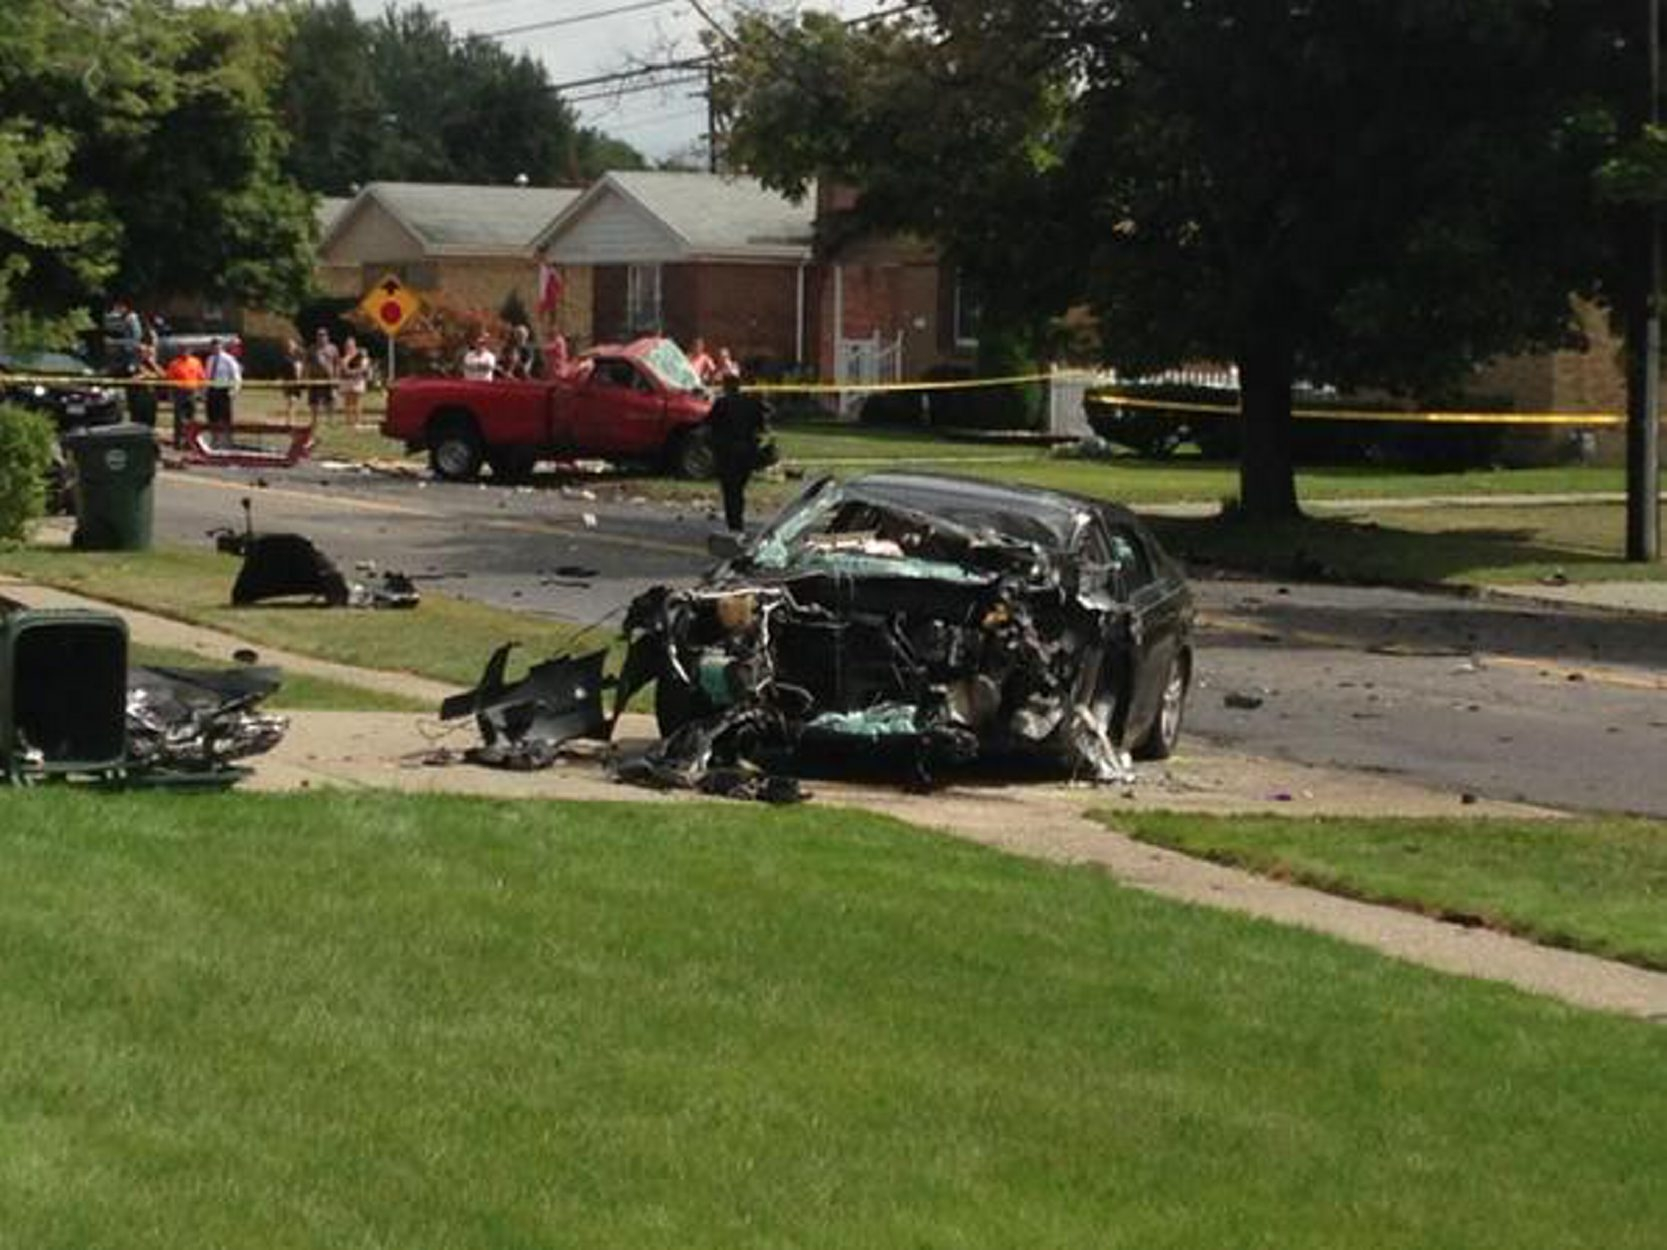 The scene of fatal mid-day collision on French Road in Depew that killed the driver of the car, injured three others